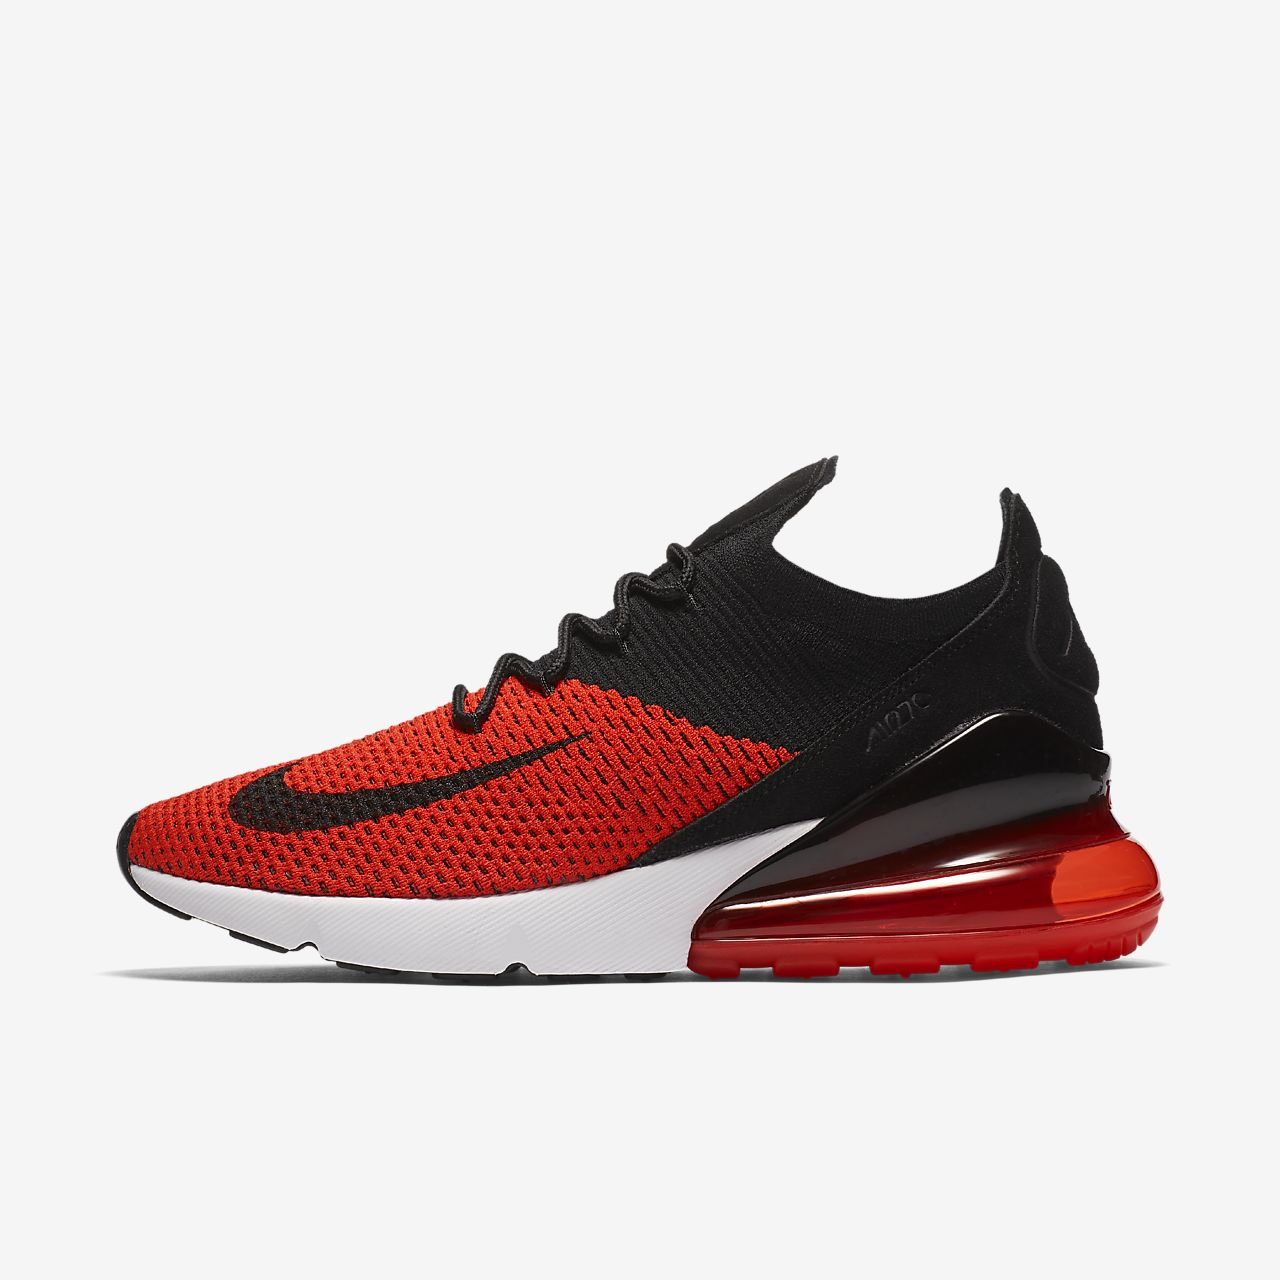 505dd53e6e16 Nike Air Max 270 Flyknit Men s Shoe. Nike.com